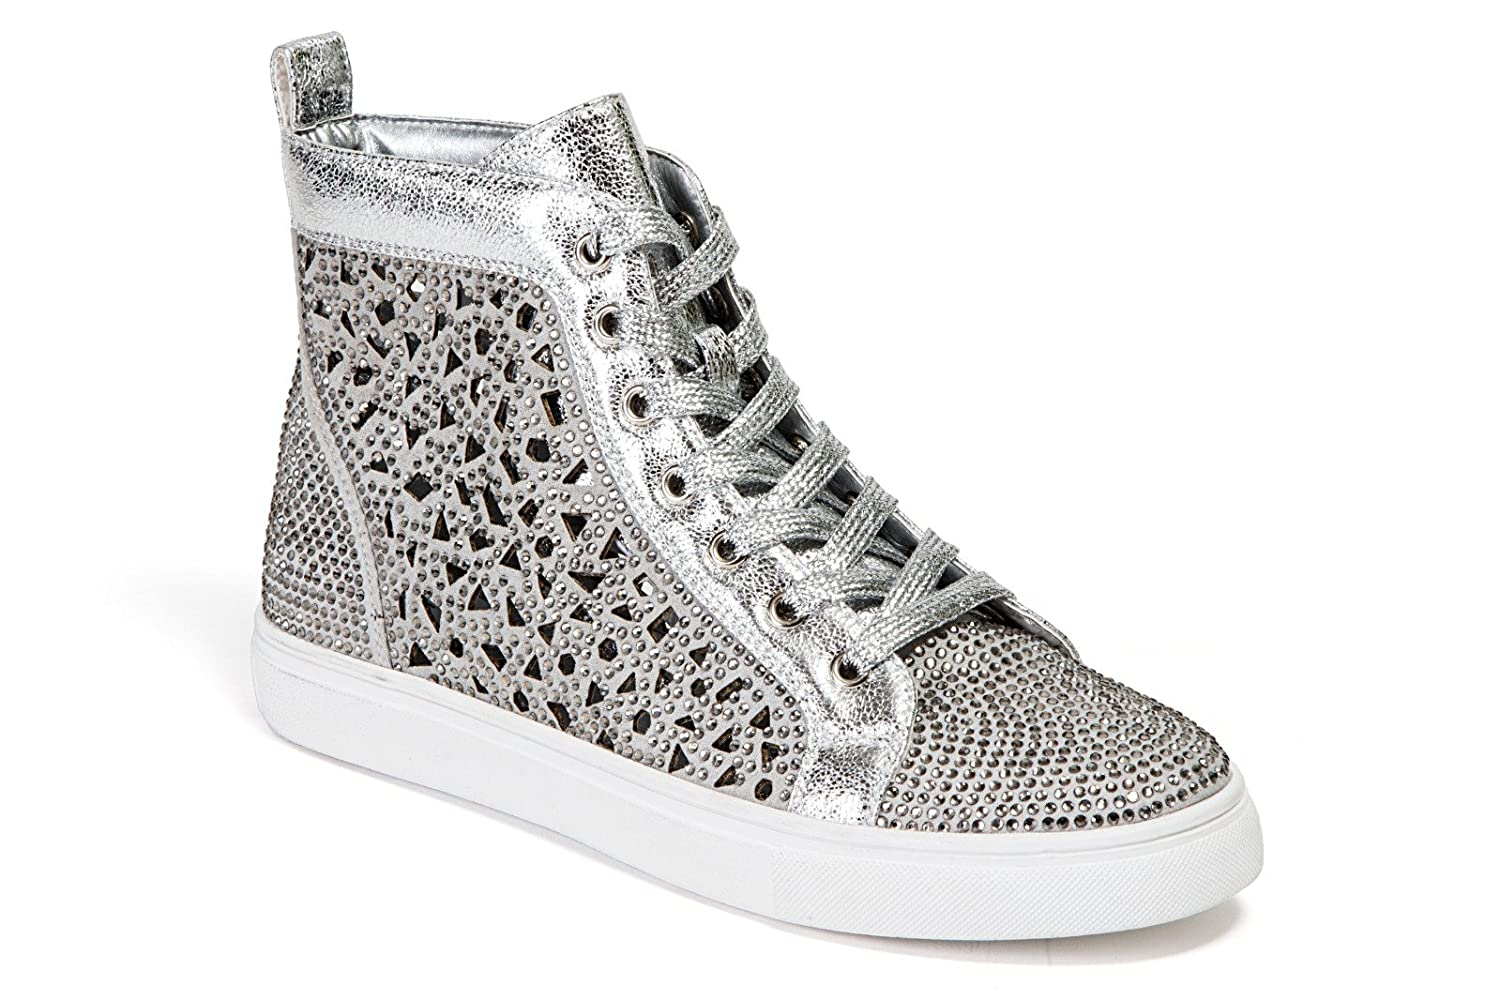 Lady Couture Flat Laser Cut High Top Bling Rhinestone Sneaker Women's Shoes New York B0796WMCPQ 36 EU|Silver